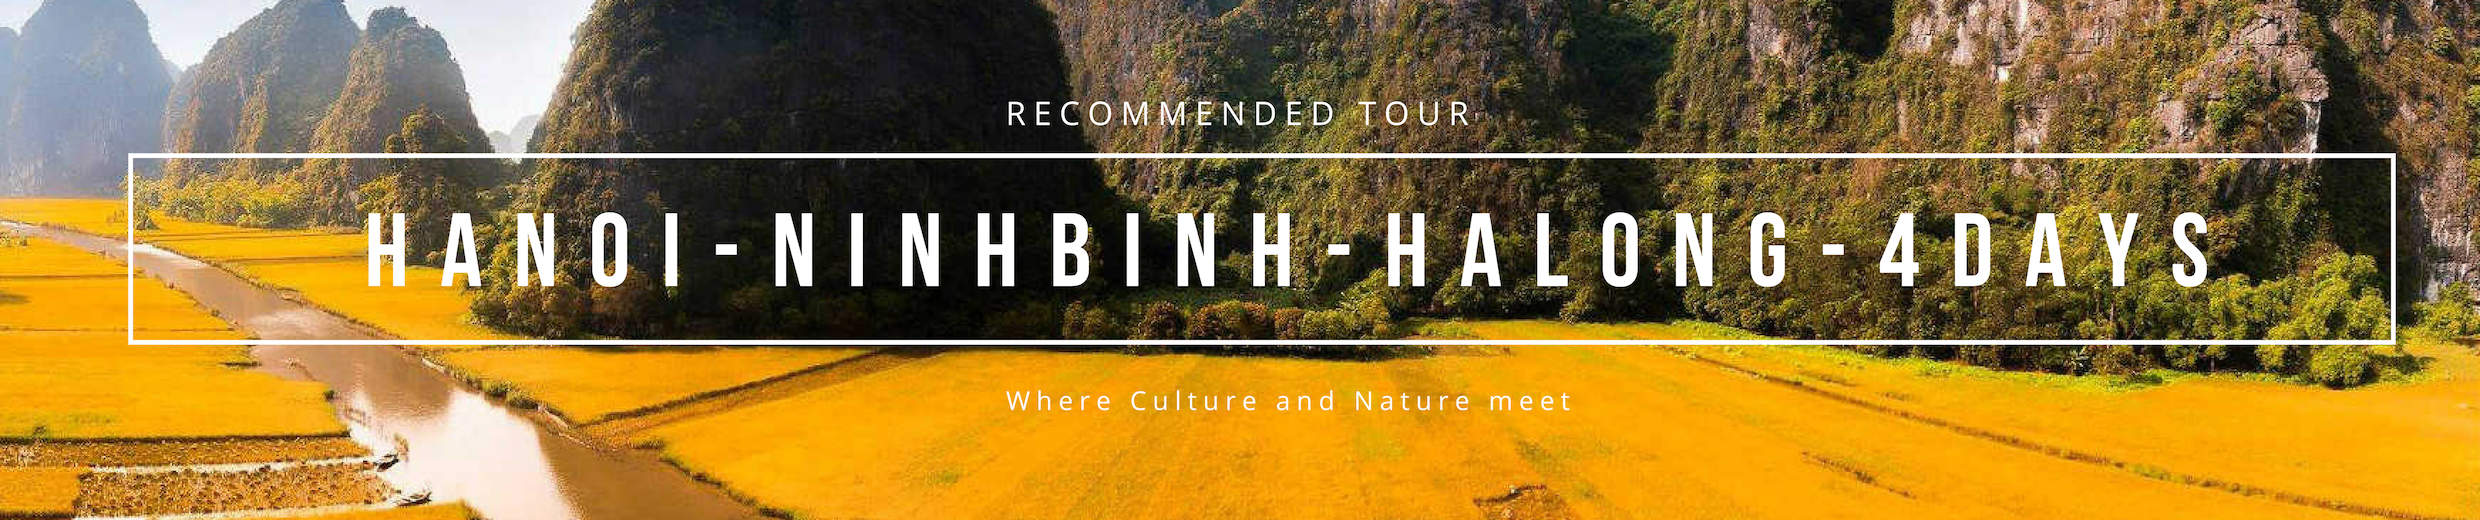 Hanoi Halong Ninh Binh Tour 4 Days